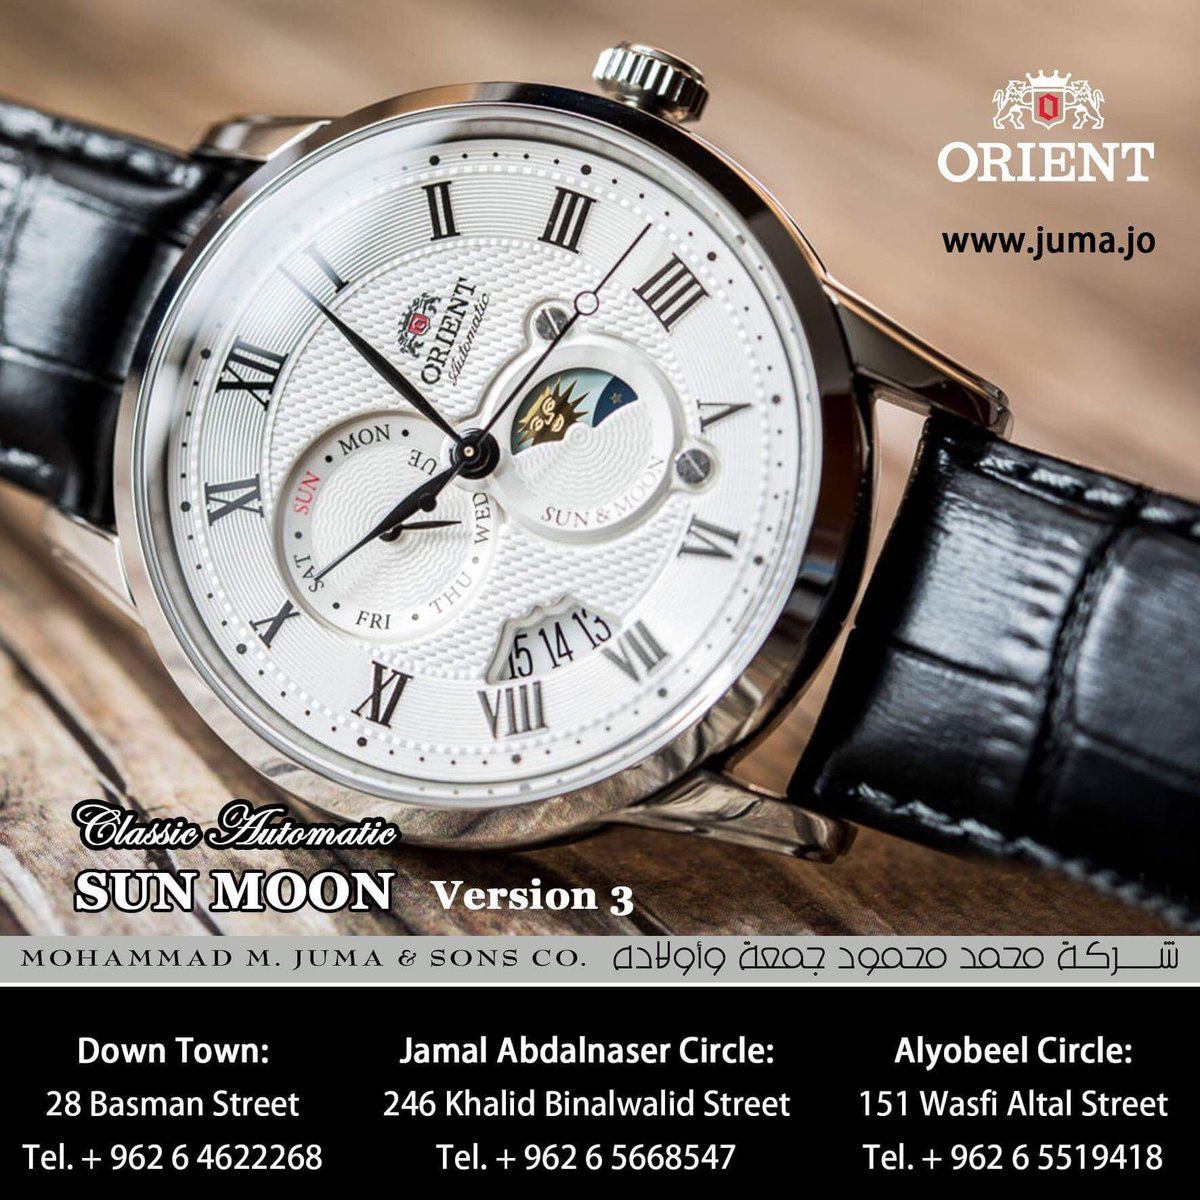 ca2f63636 ORIENT: Mechanical Classic Watch, Leather Strap - 42.5mm #orientwatch  #orientwatches #wristwatch #sunmoonwatches #sun #moon #luxury #fashion # watch #watches ...